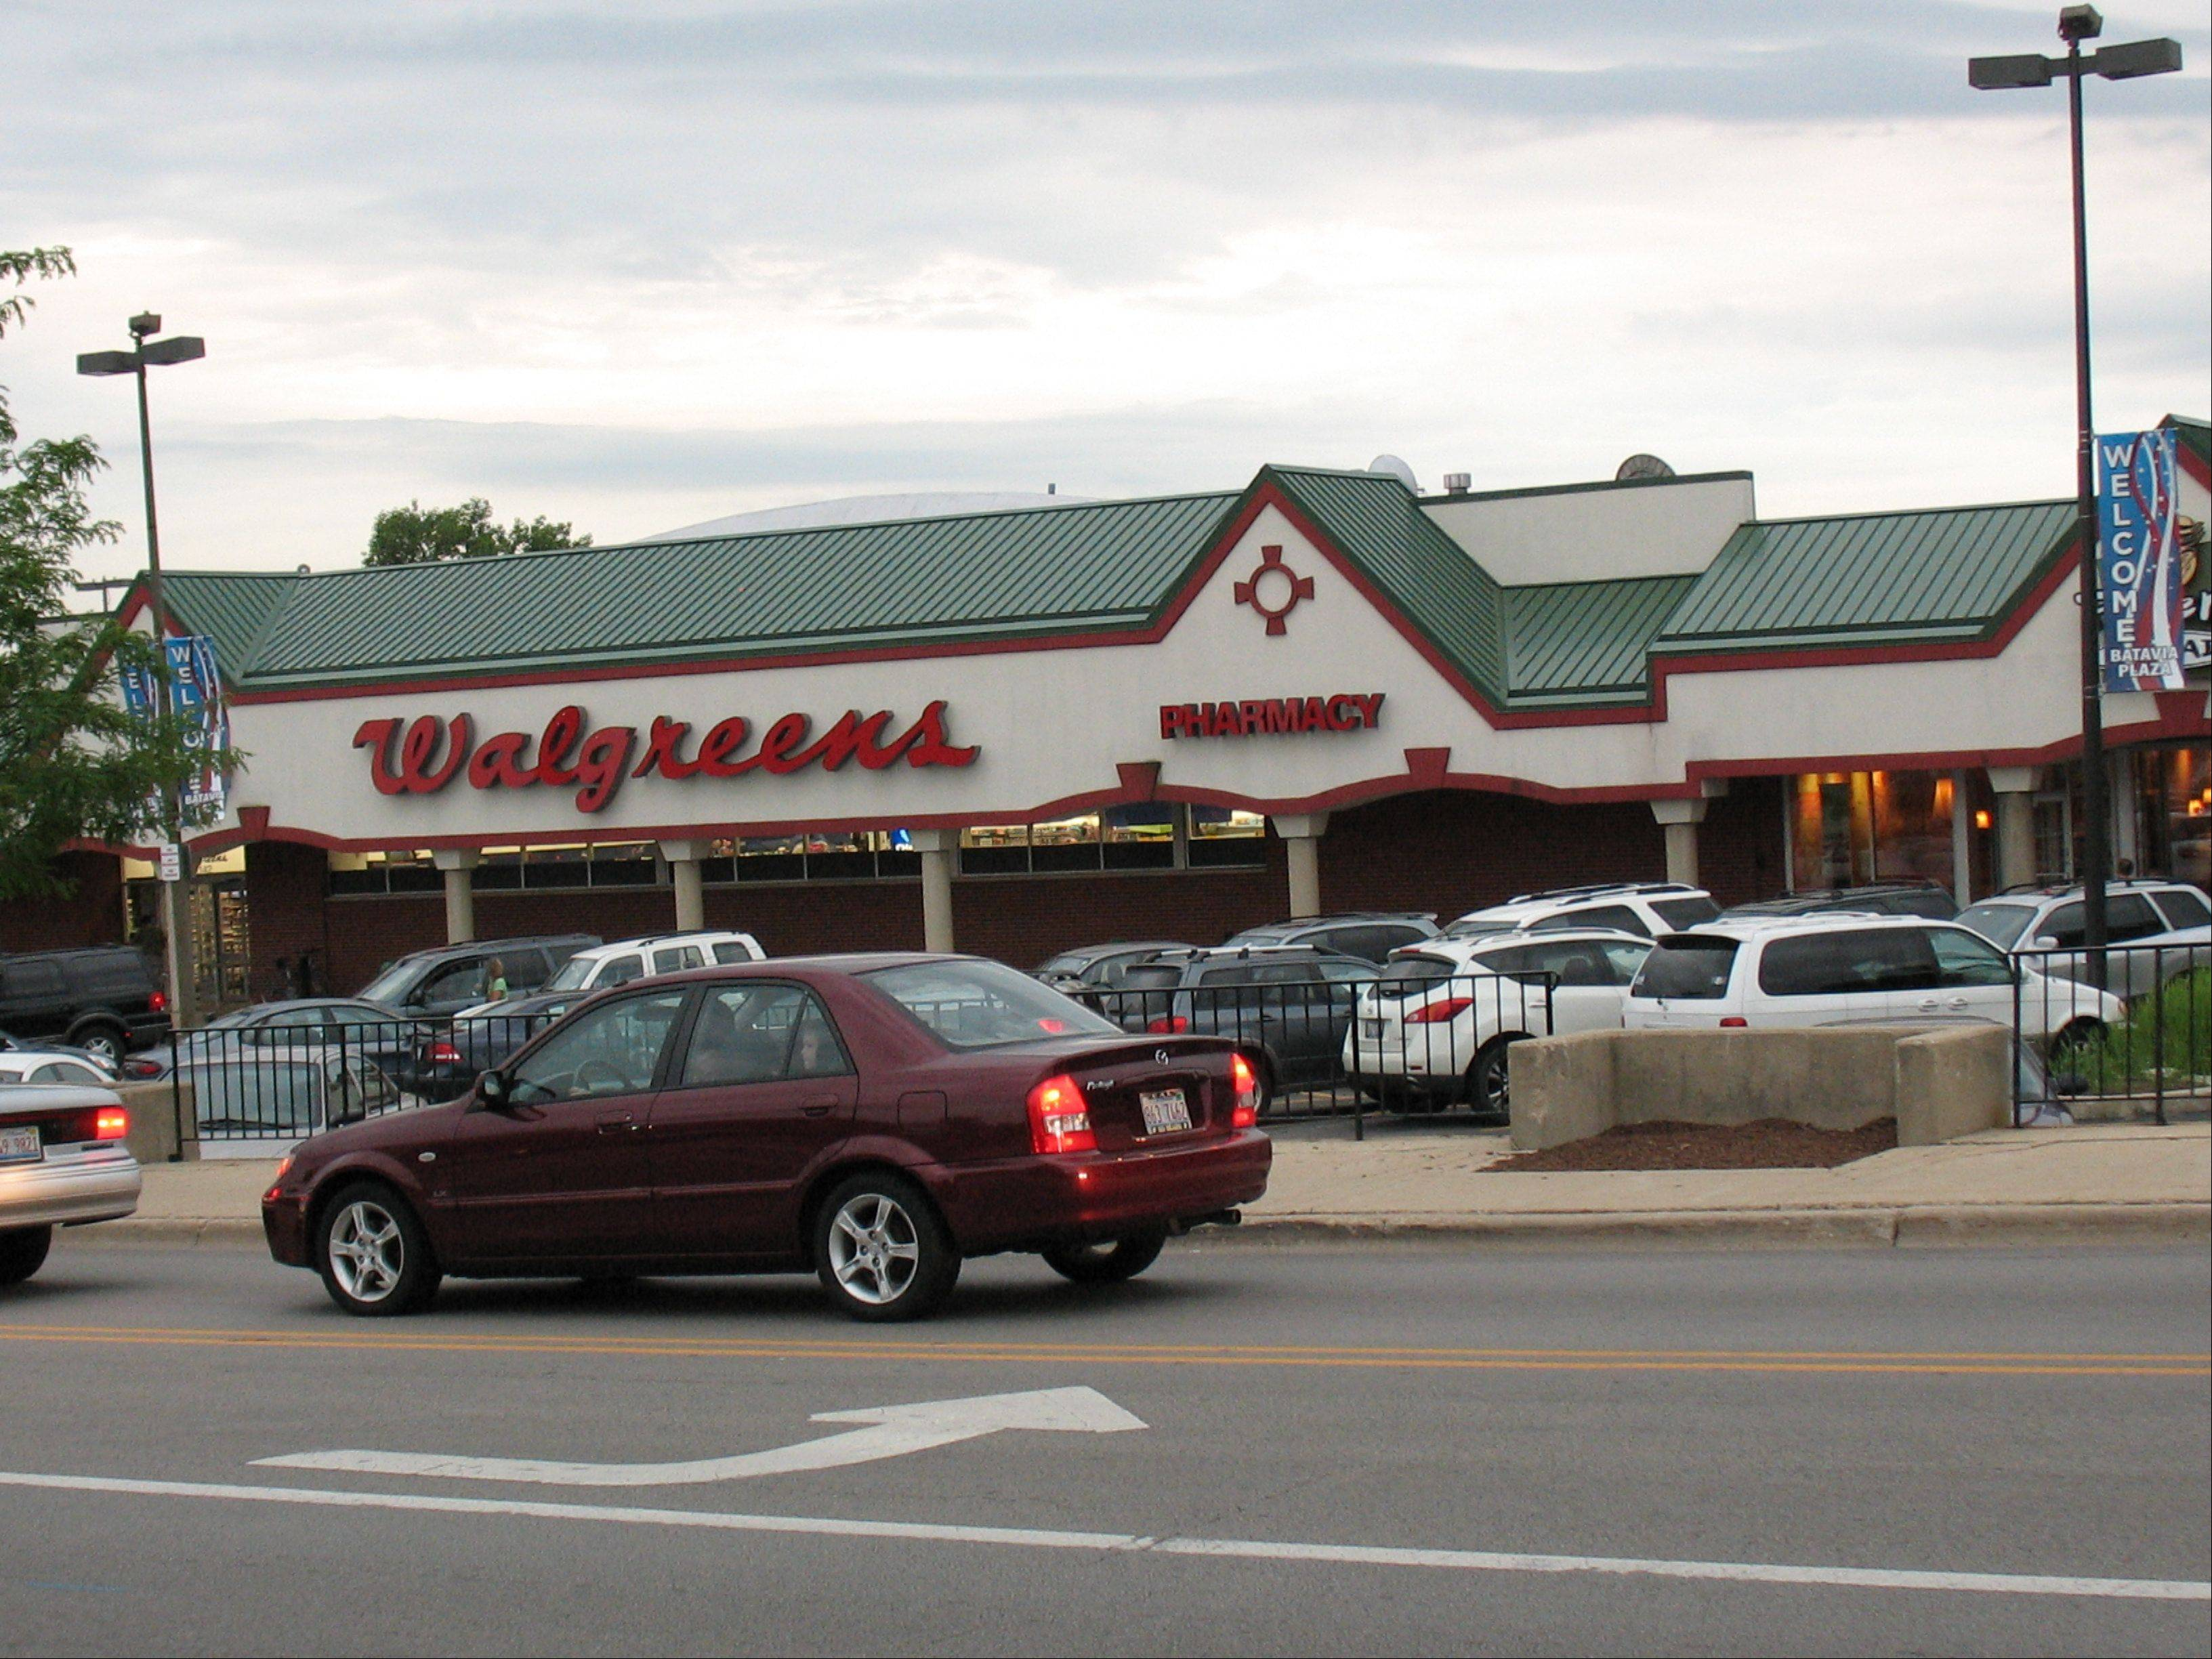 Deerfield-based Walgreen's fiscal second-quarter earnings climbed 11 percent, helped by contributions from European health and beauty retailer Alliance Boots, a business sale gain, and its new contract with Express Scripts Holding Co.